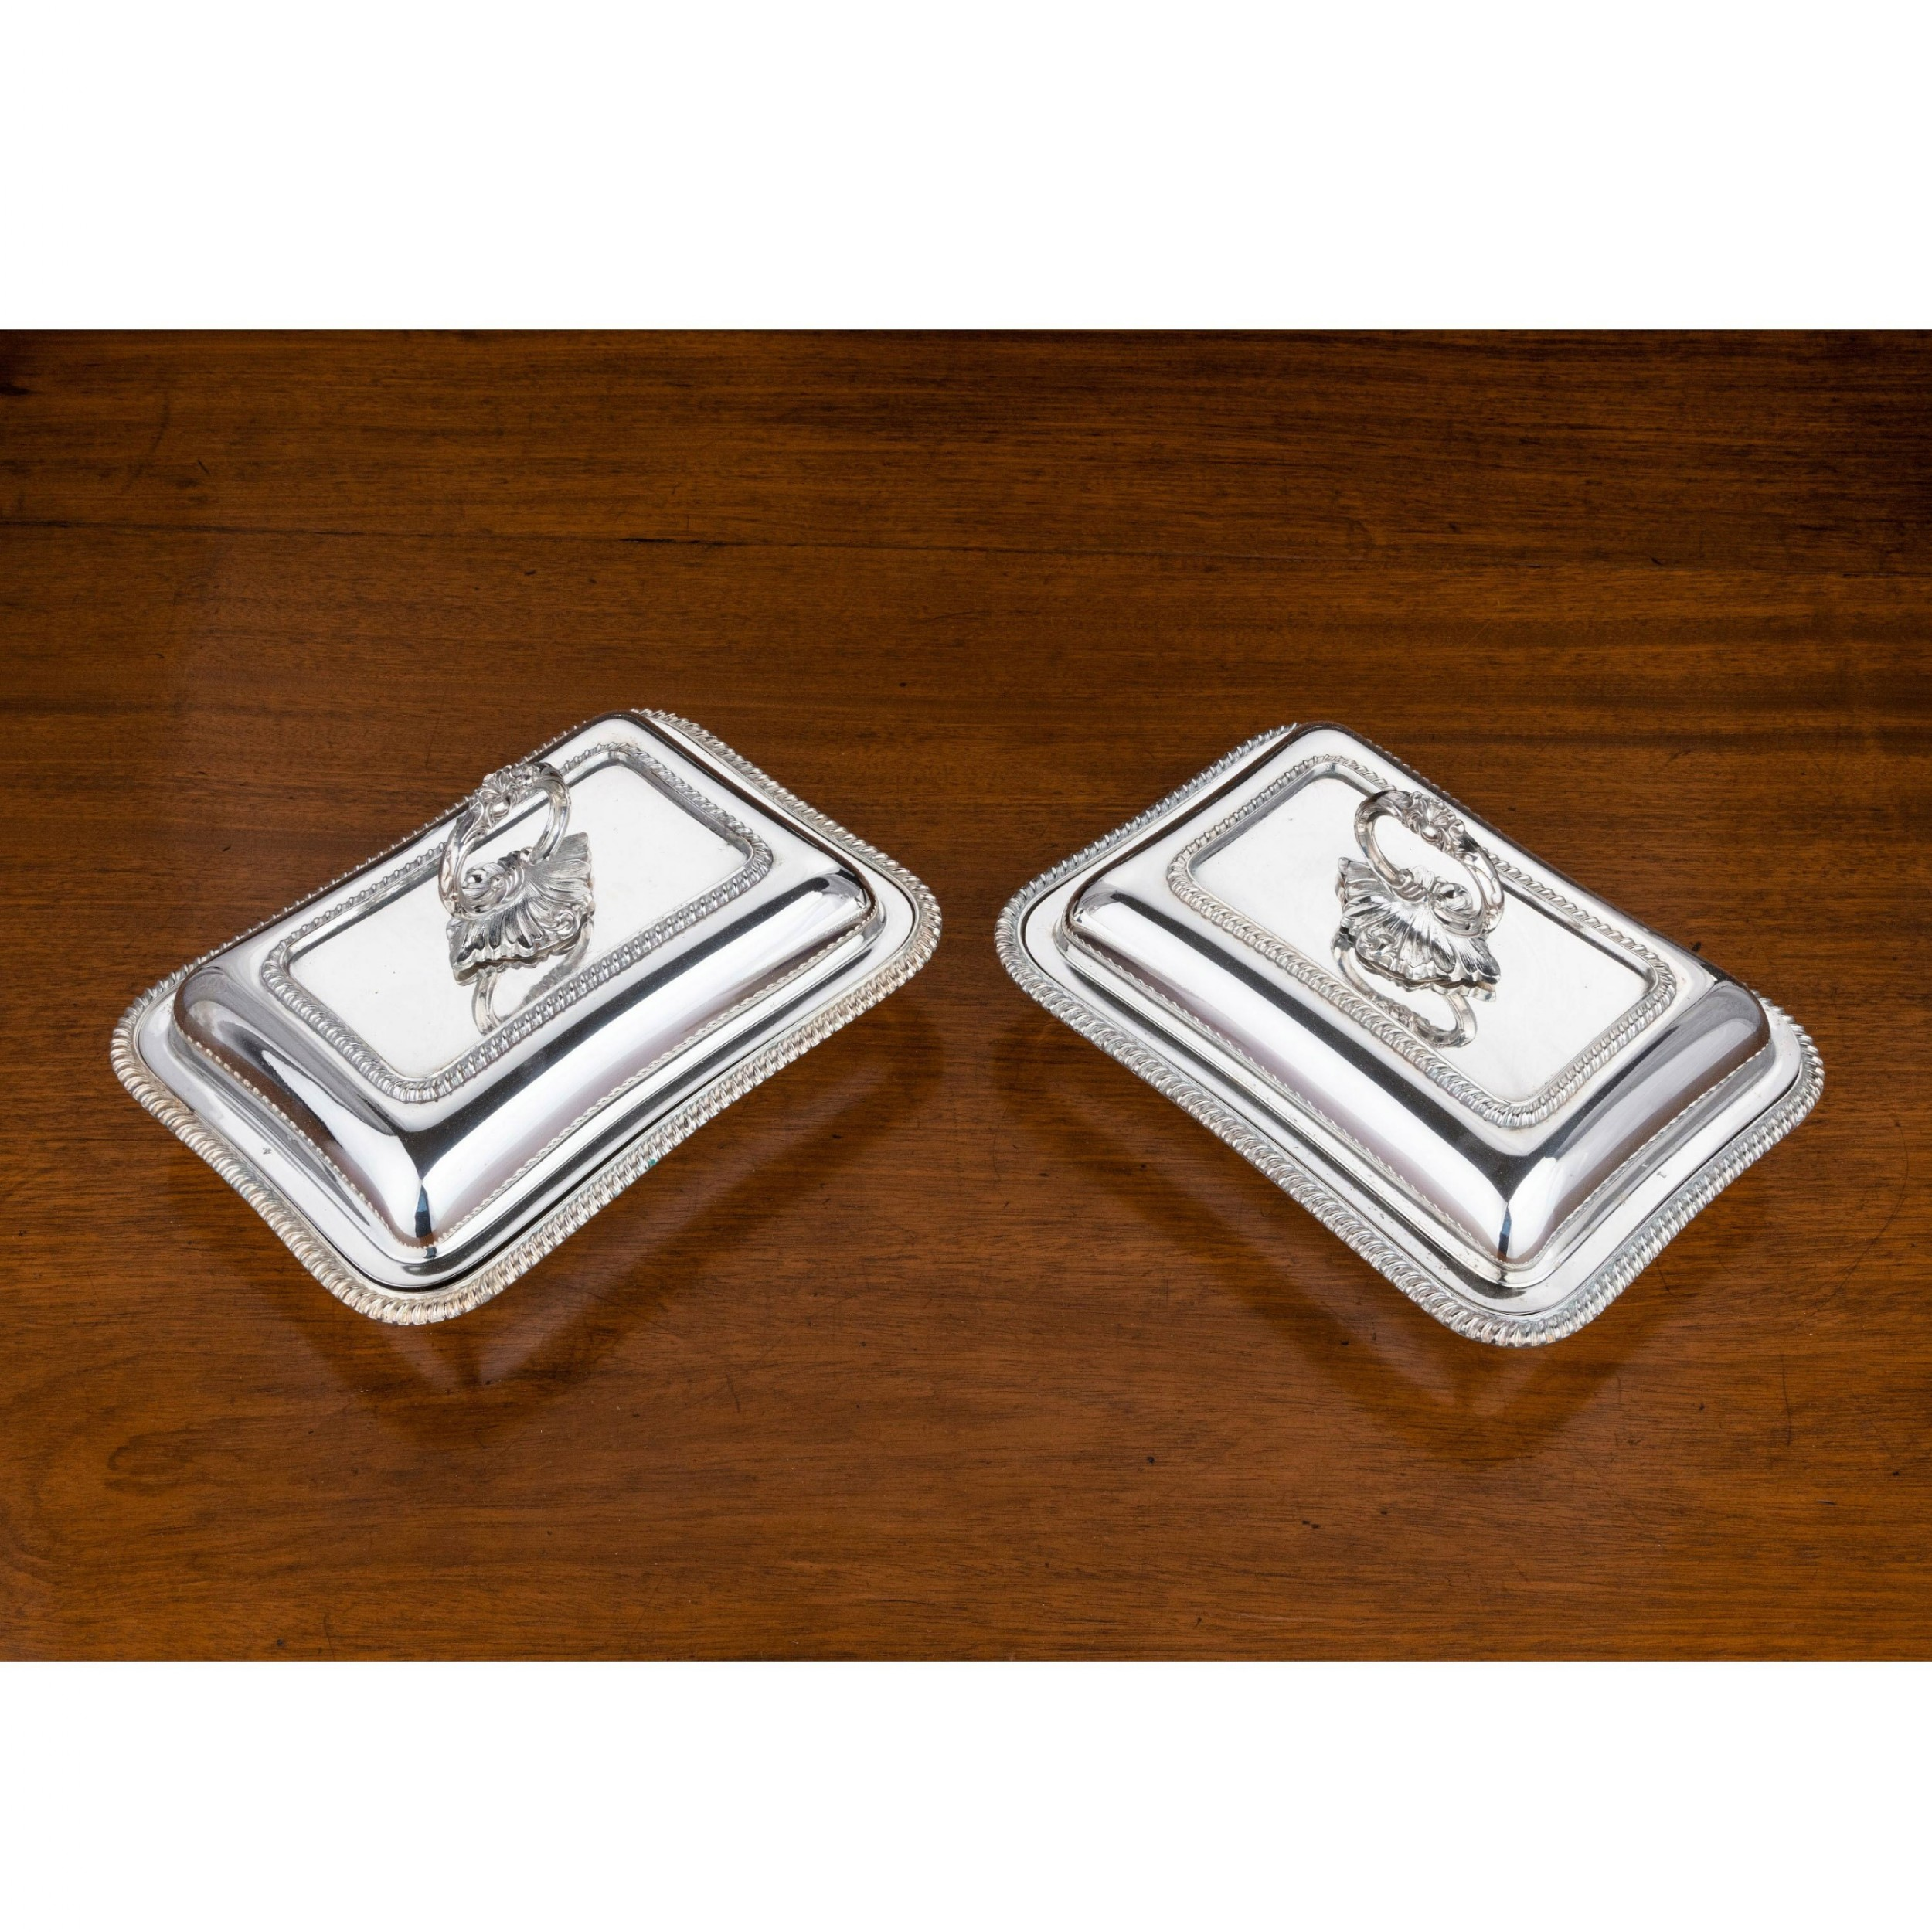 a pair of early 20th century rectangular silver plated entre dishes